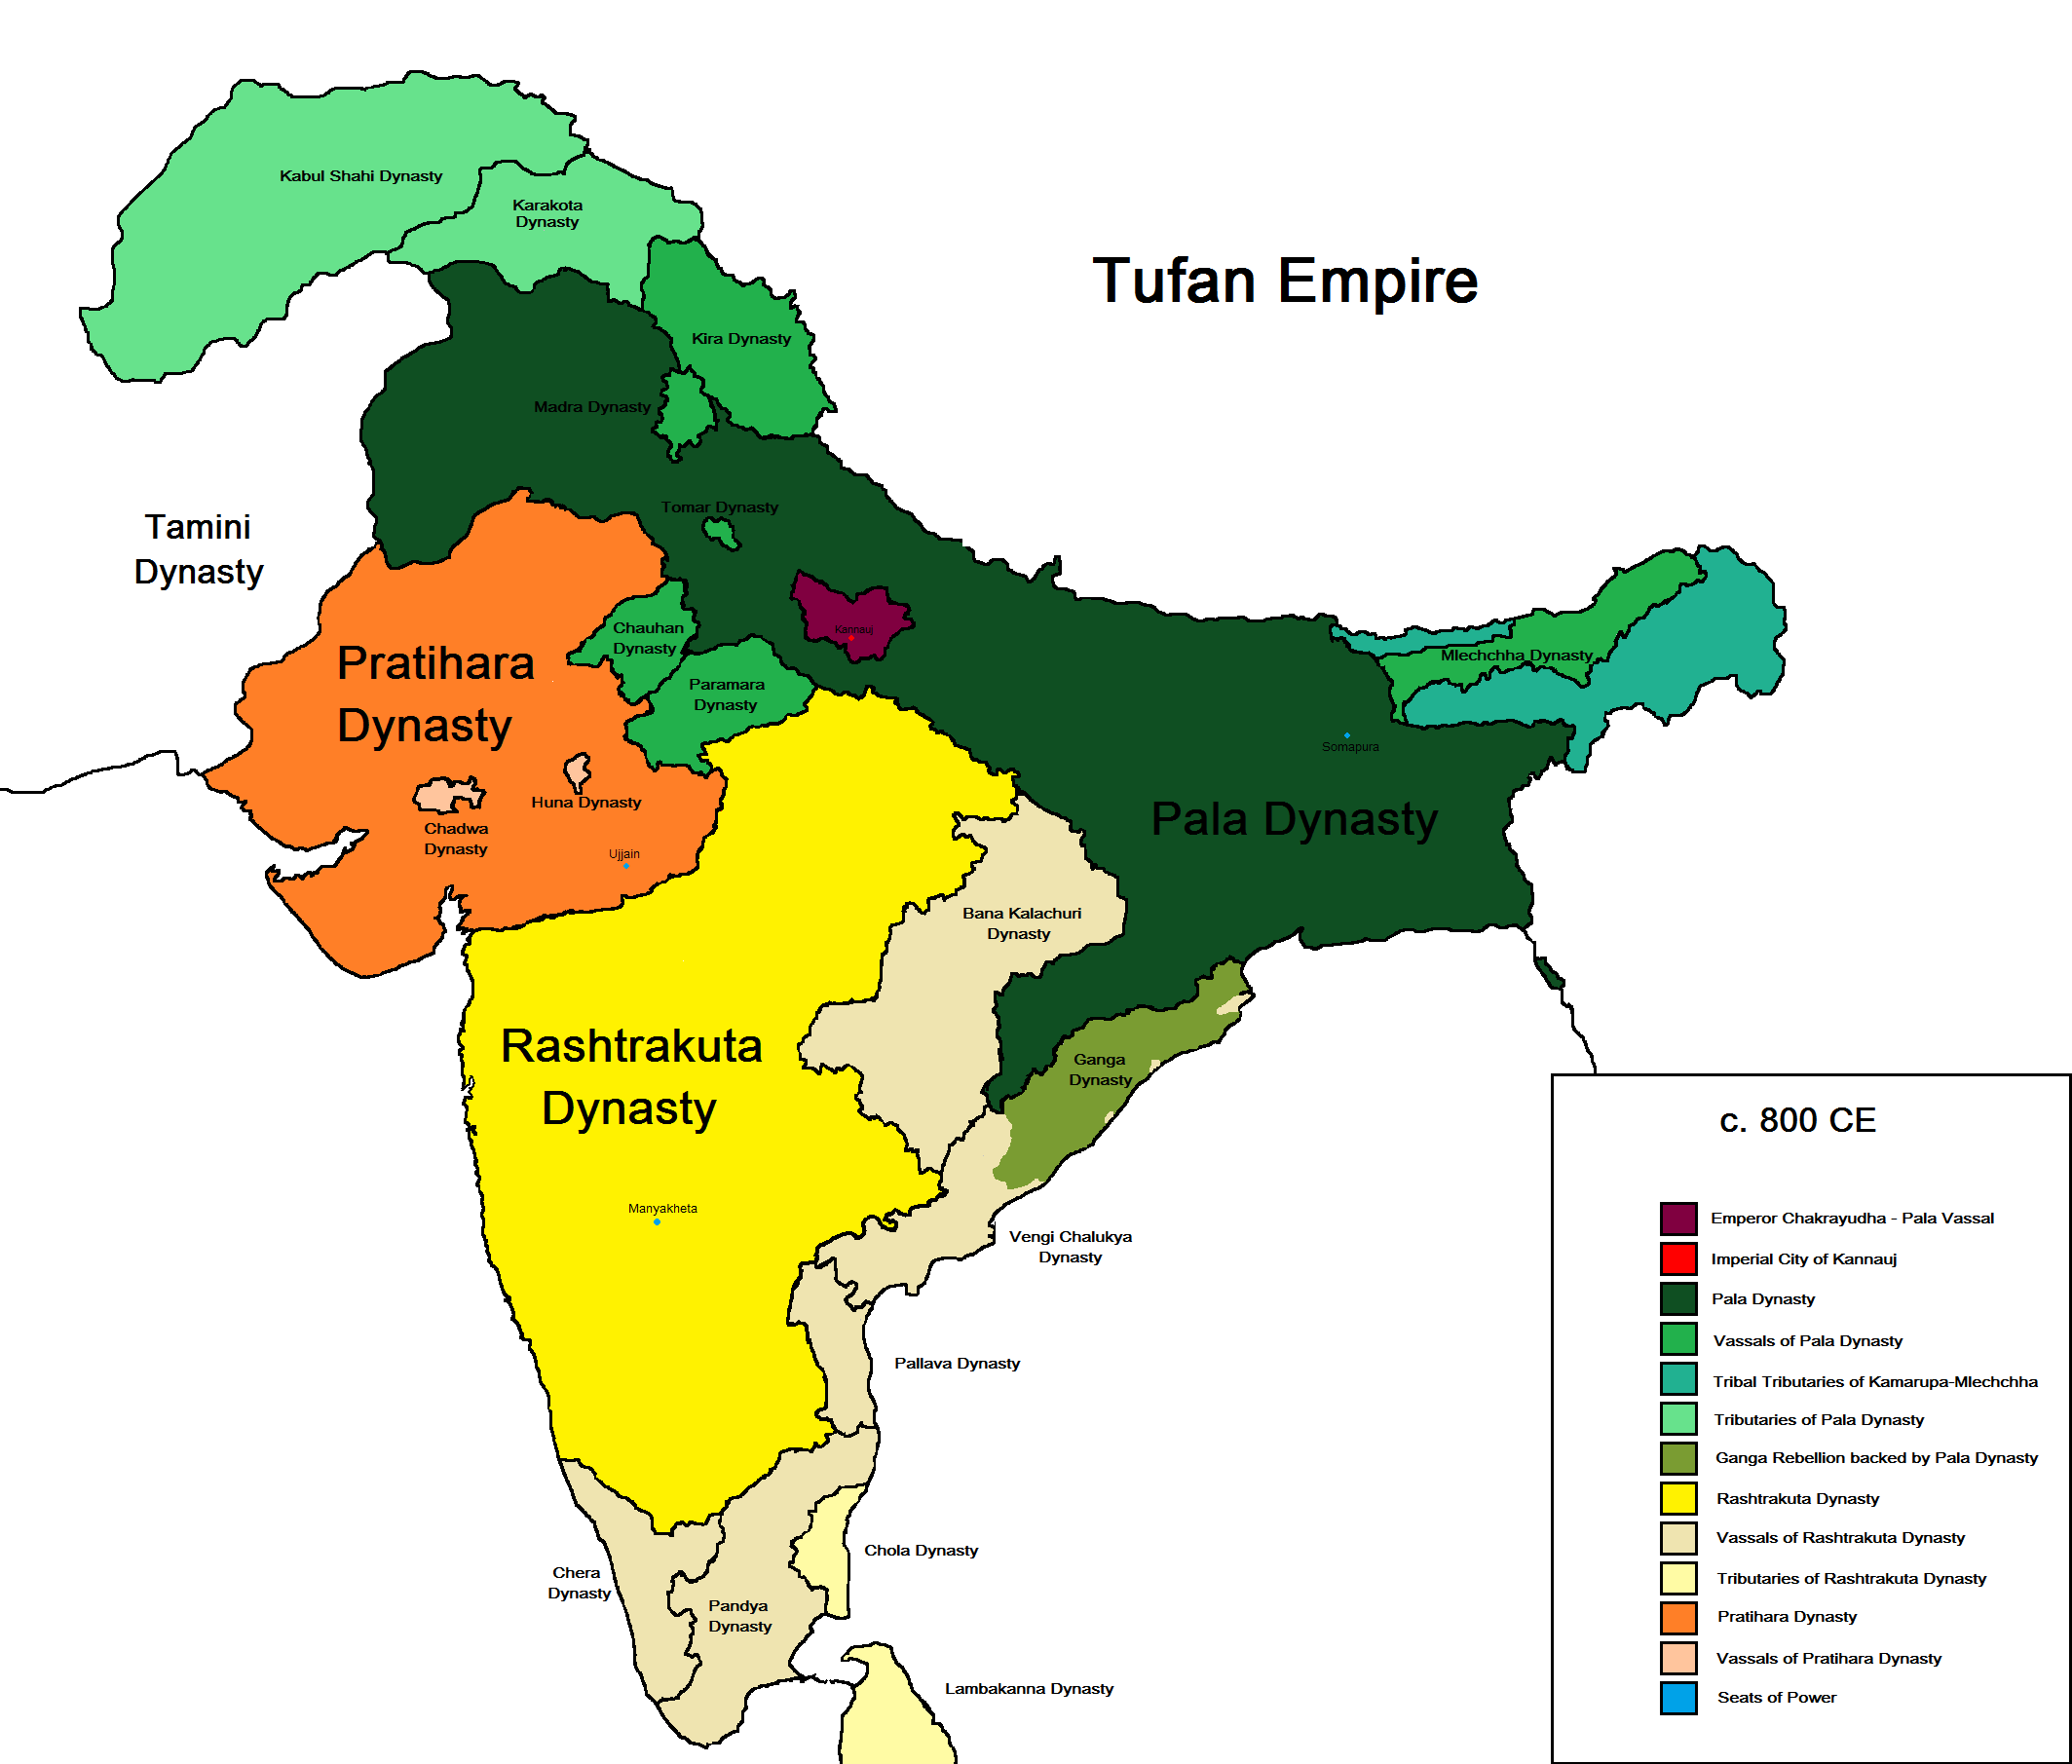 india maps and views Map Map Of India In C 800 Ce Ancient India Map Indian History india maps and views